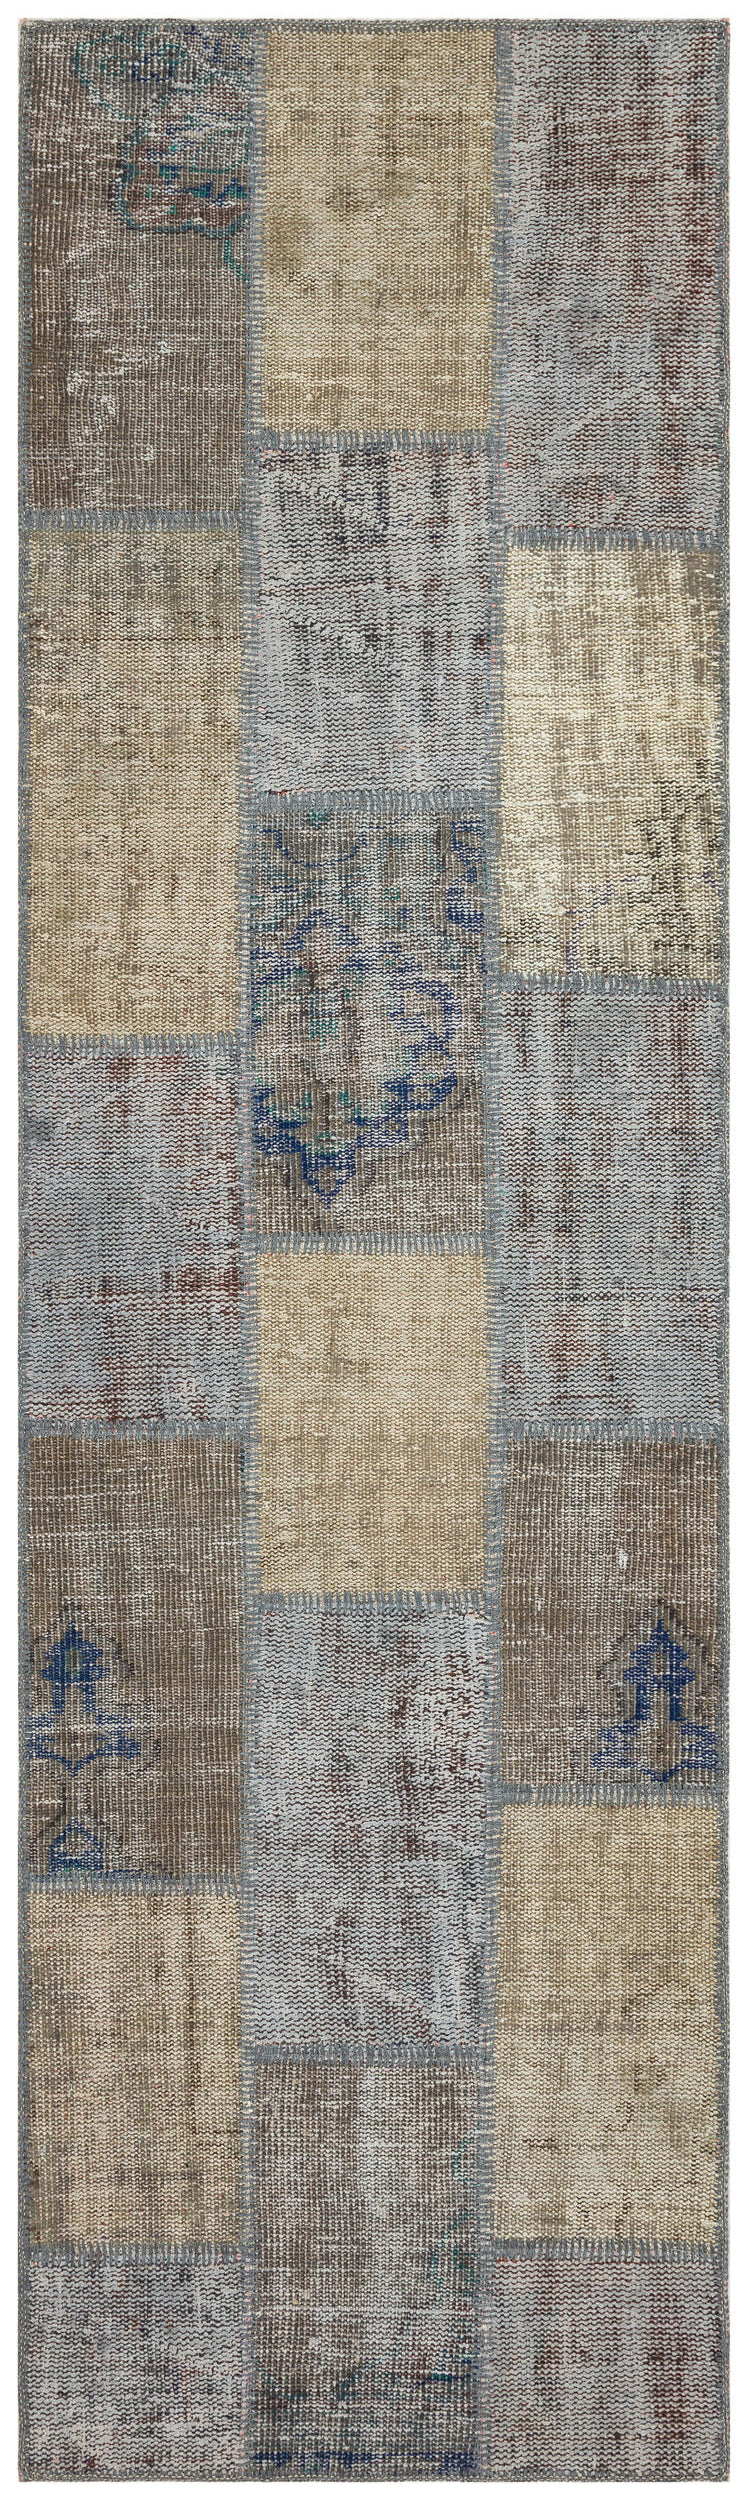 Gray Over Dyed Patchwork Unique Rug 2'8'' x 9'3'' ft 82 x 281 cm